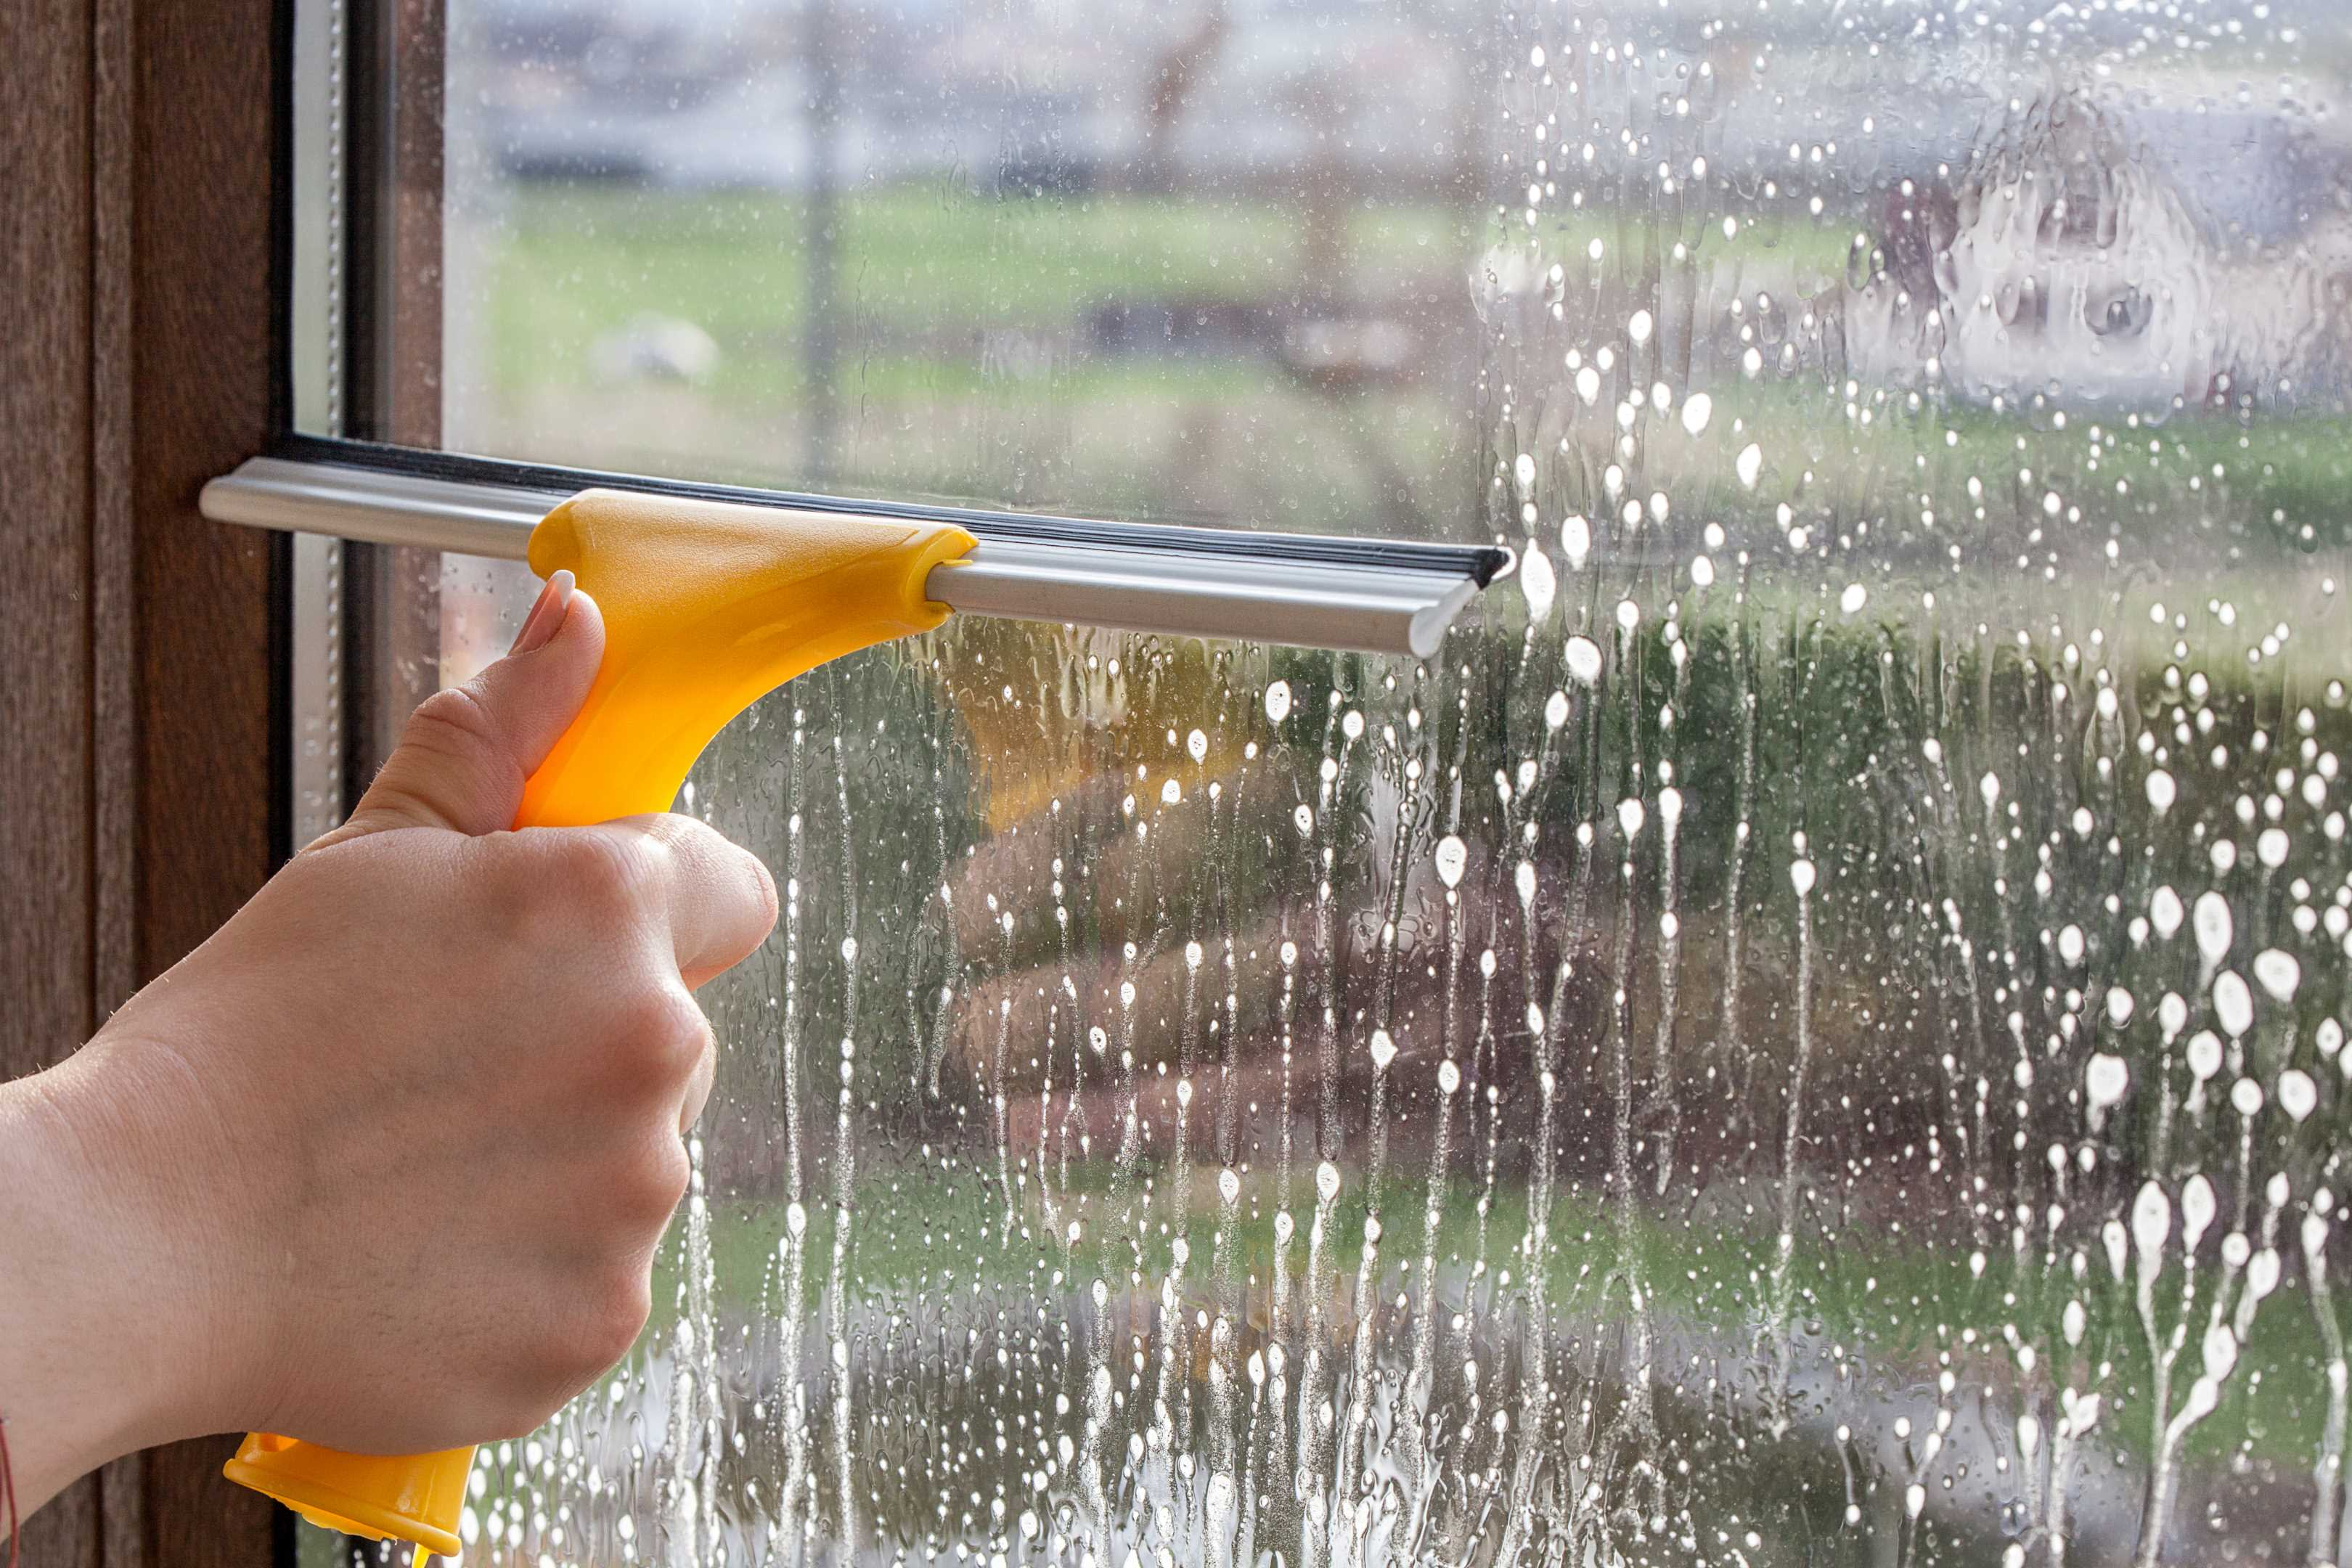 Extremeclean Surrey Window Cleaner Walton On Thames